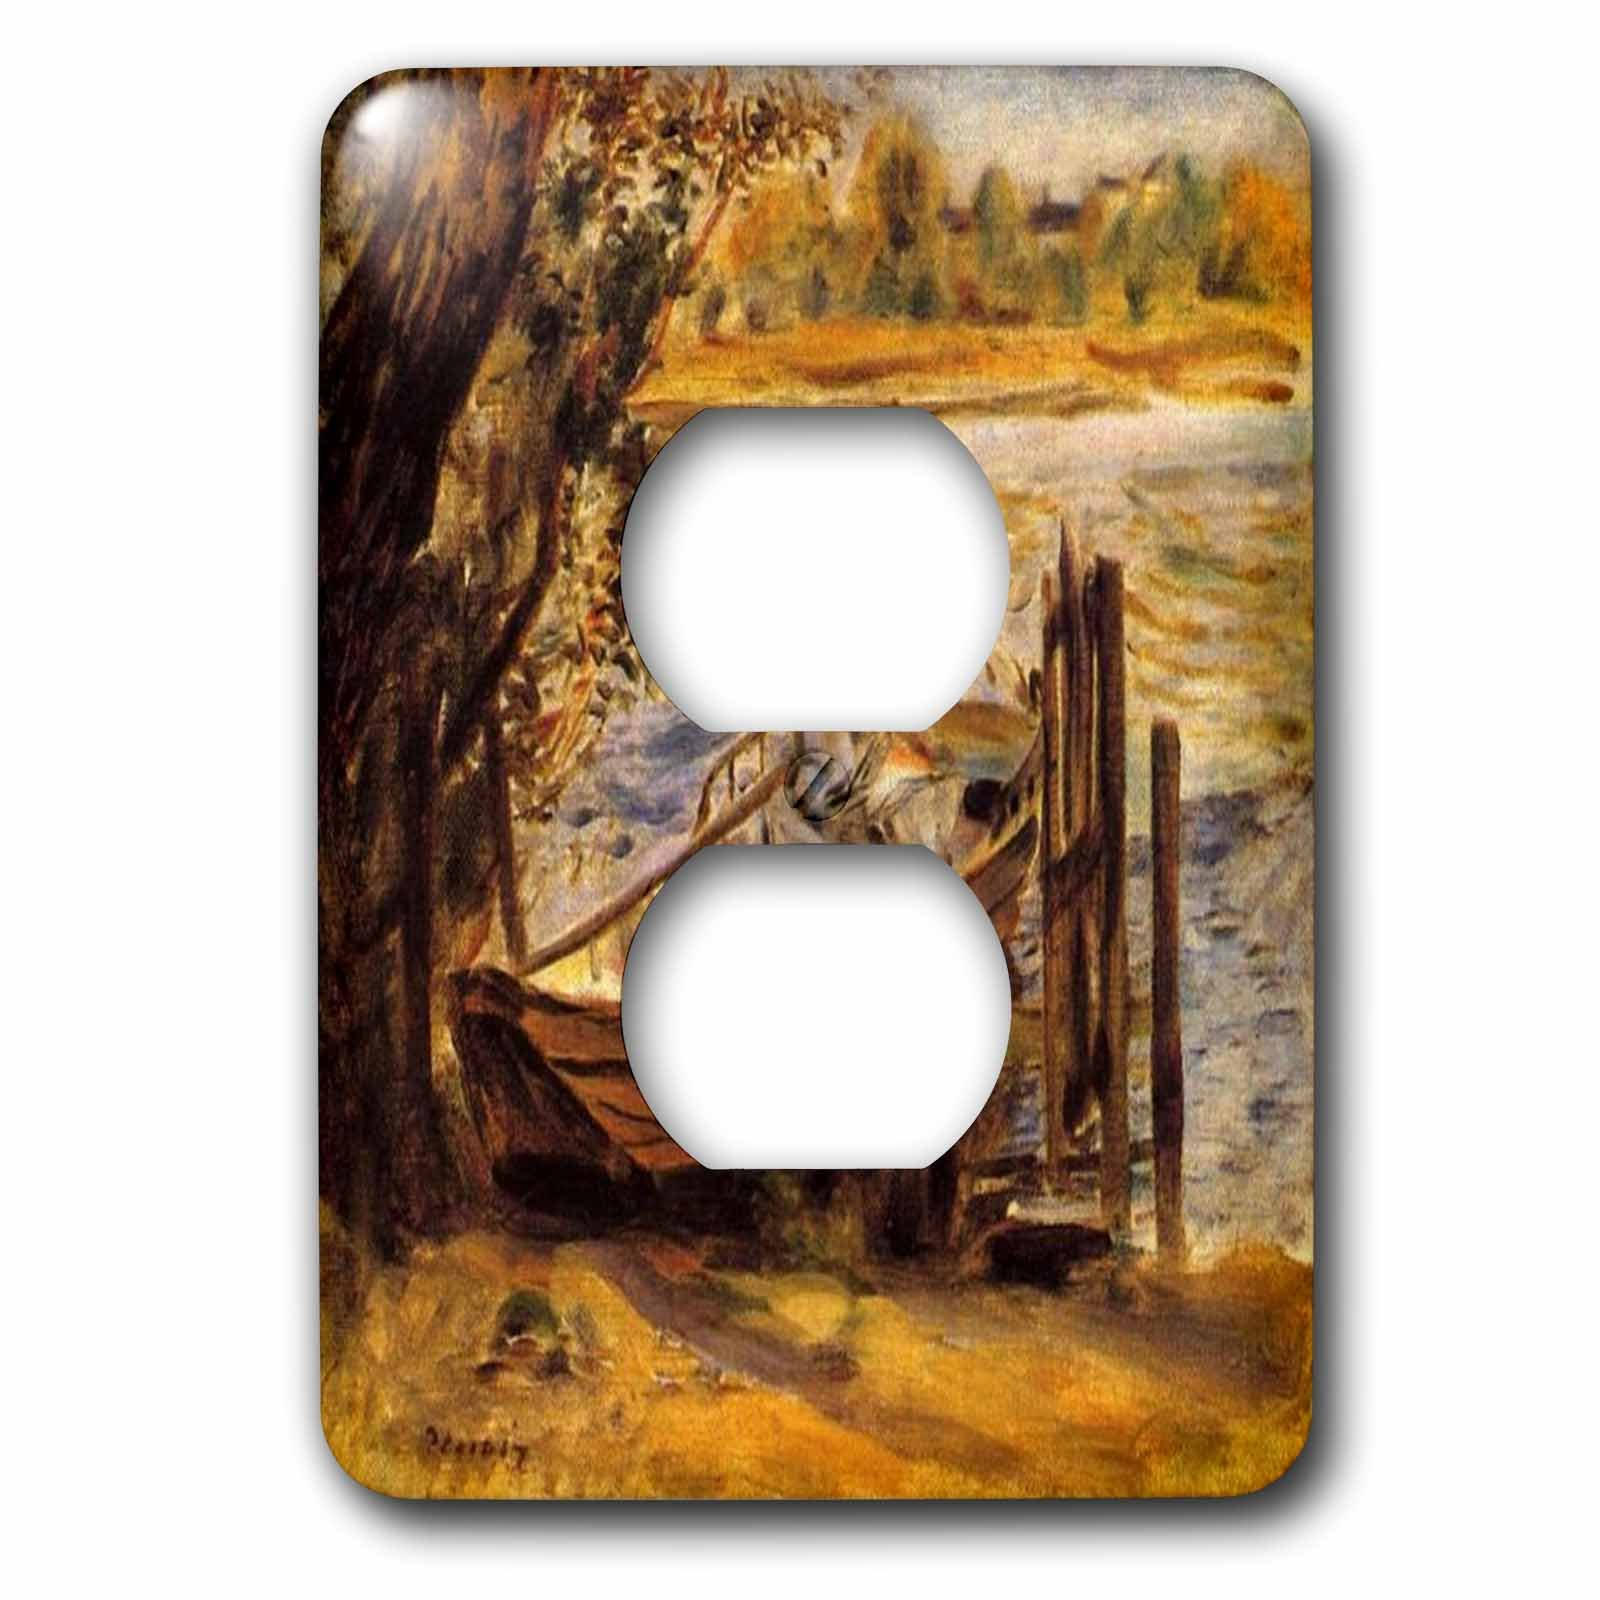 Florene Renoir Paintings - Image of Renoir Young woman In A Boat - Light Switch Covers - 2 plug outlet cover (lsp_243820_6)